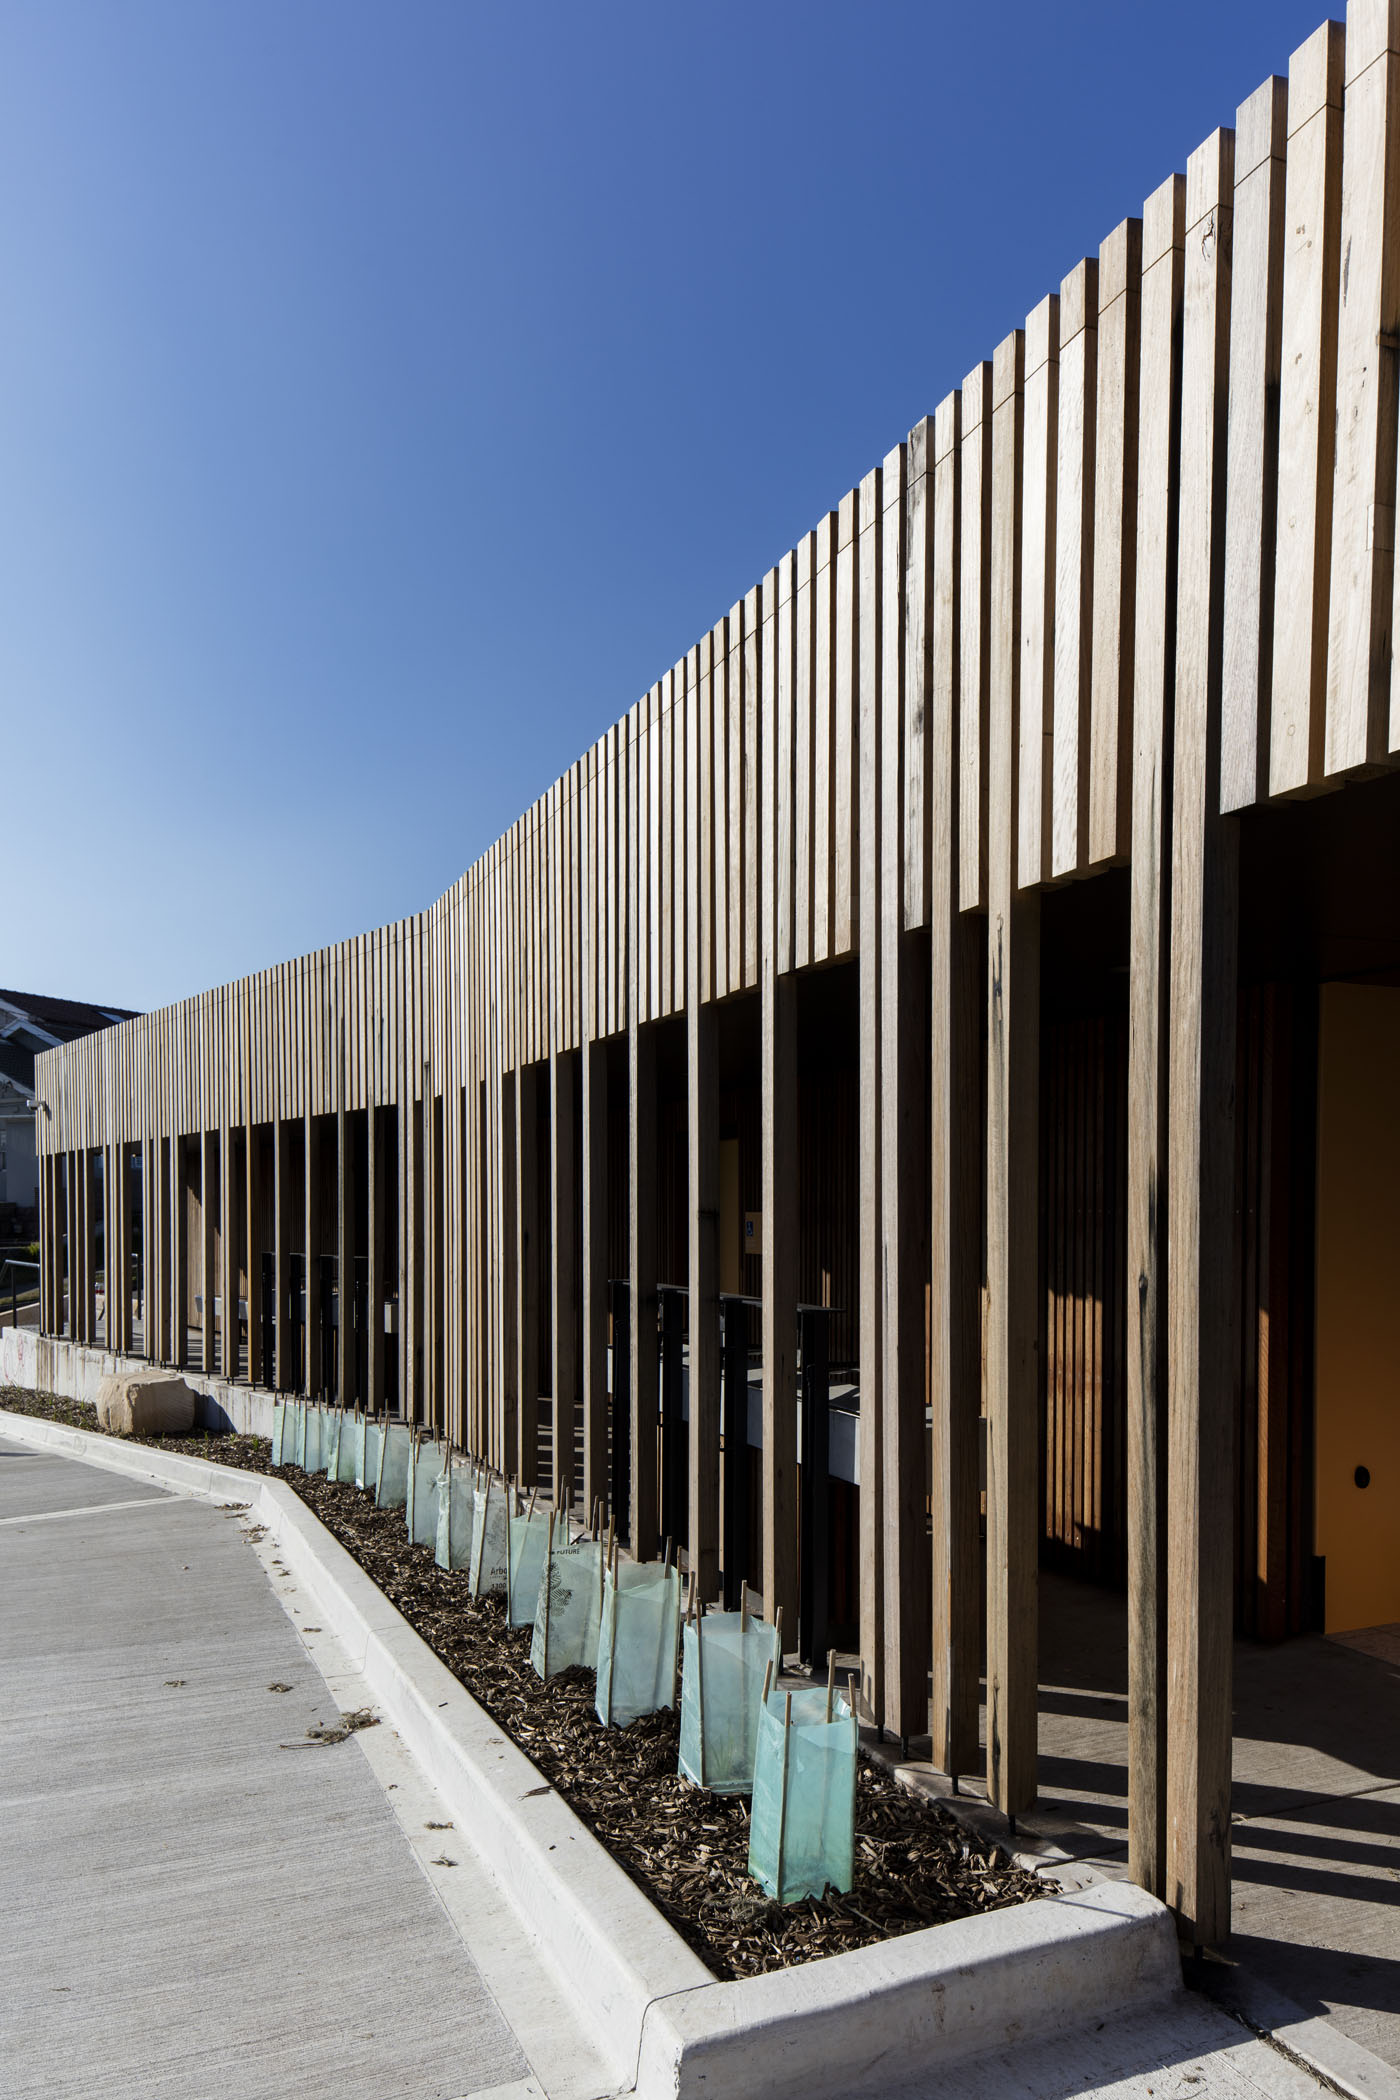 Marks Park Amenities by Sam Crawford Architects, south elevation facade and vegetation planted